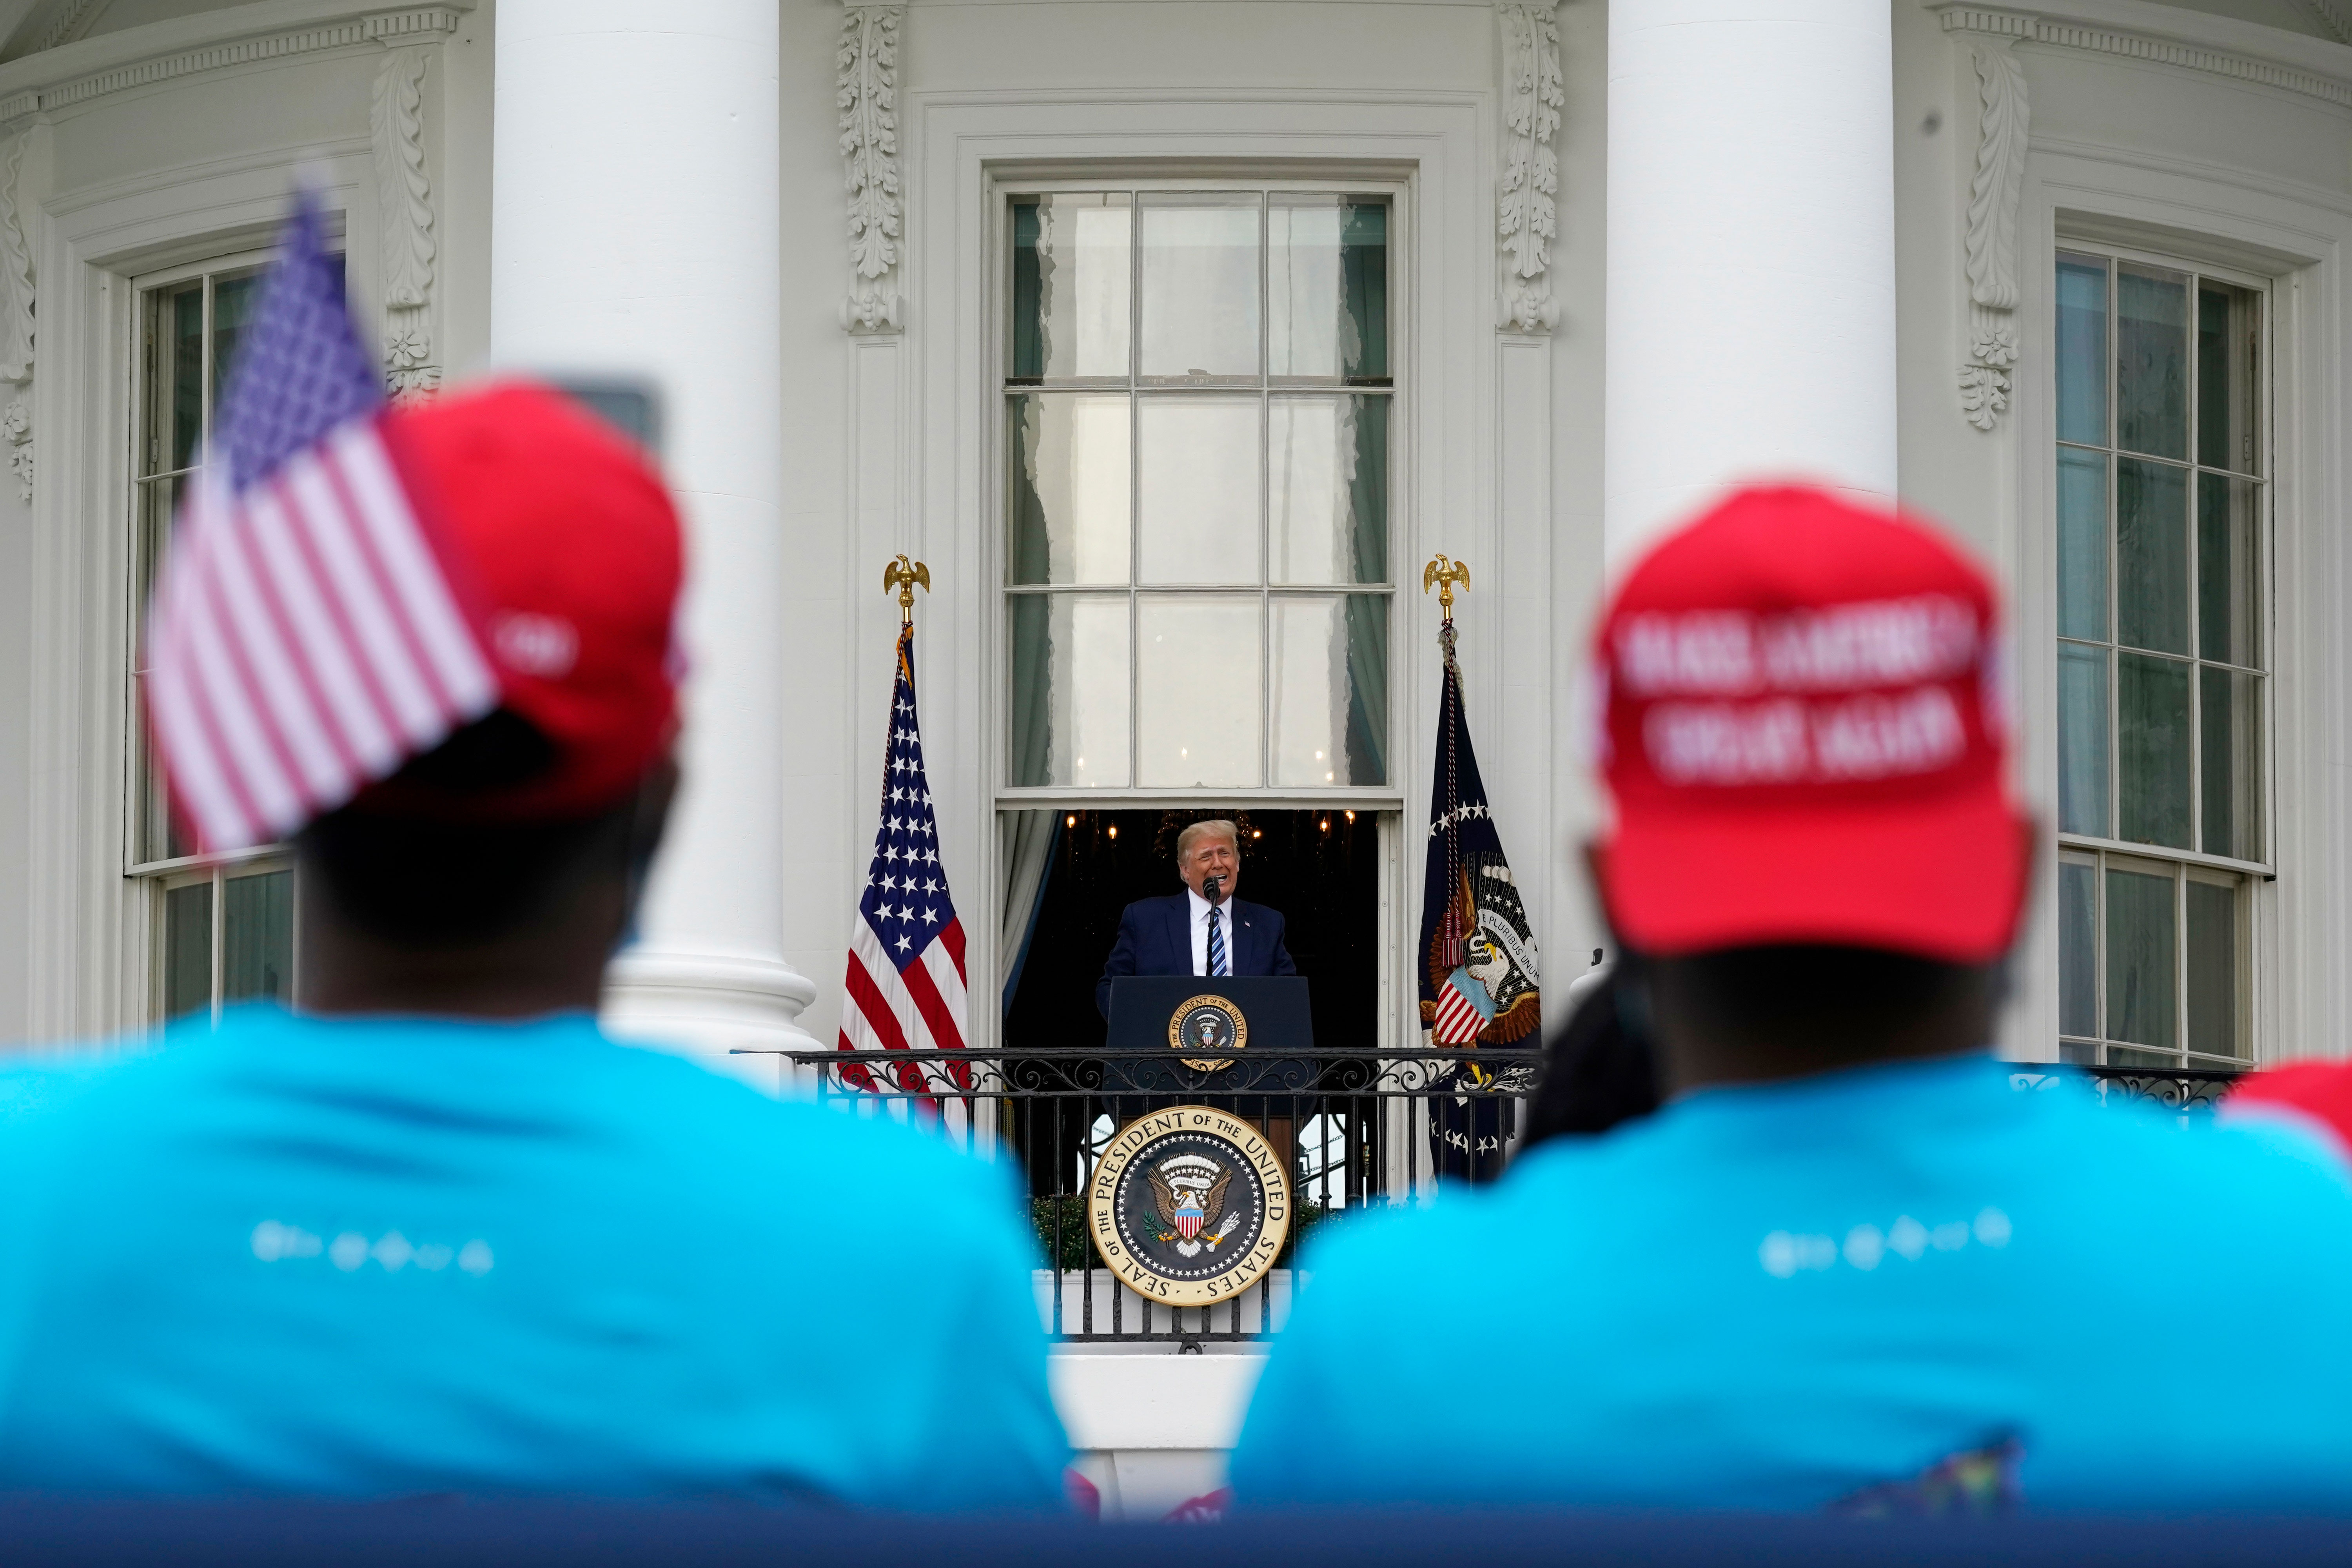 President Donald Trump speaks to supporters at the White House on October 10.